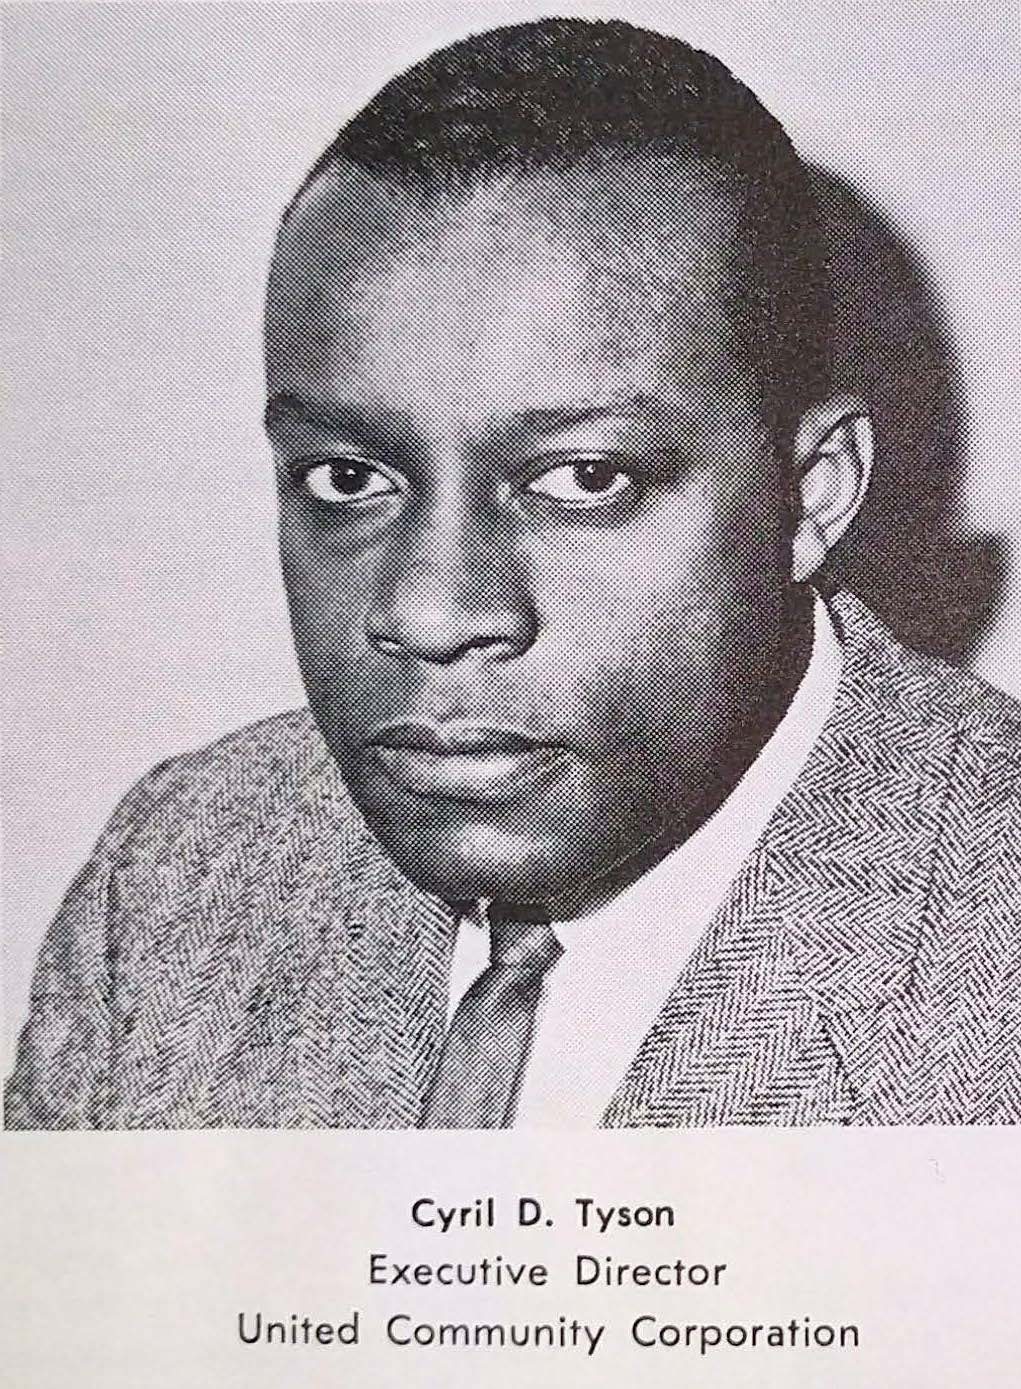 Photo of Cyril Tyson from UCC Program Report, 1965-1966